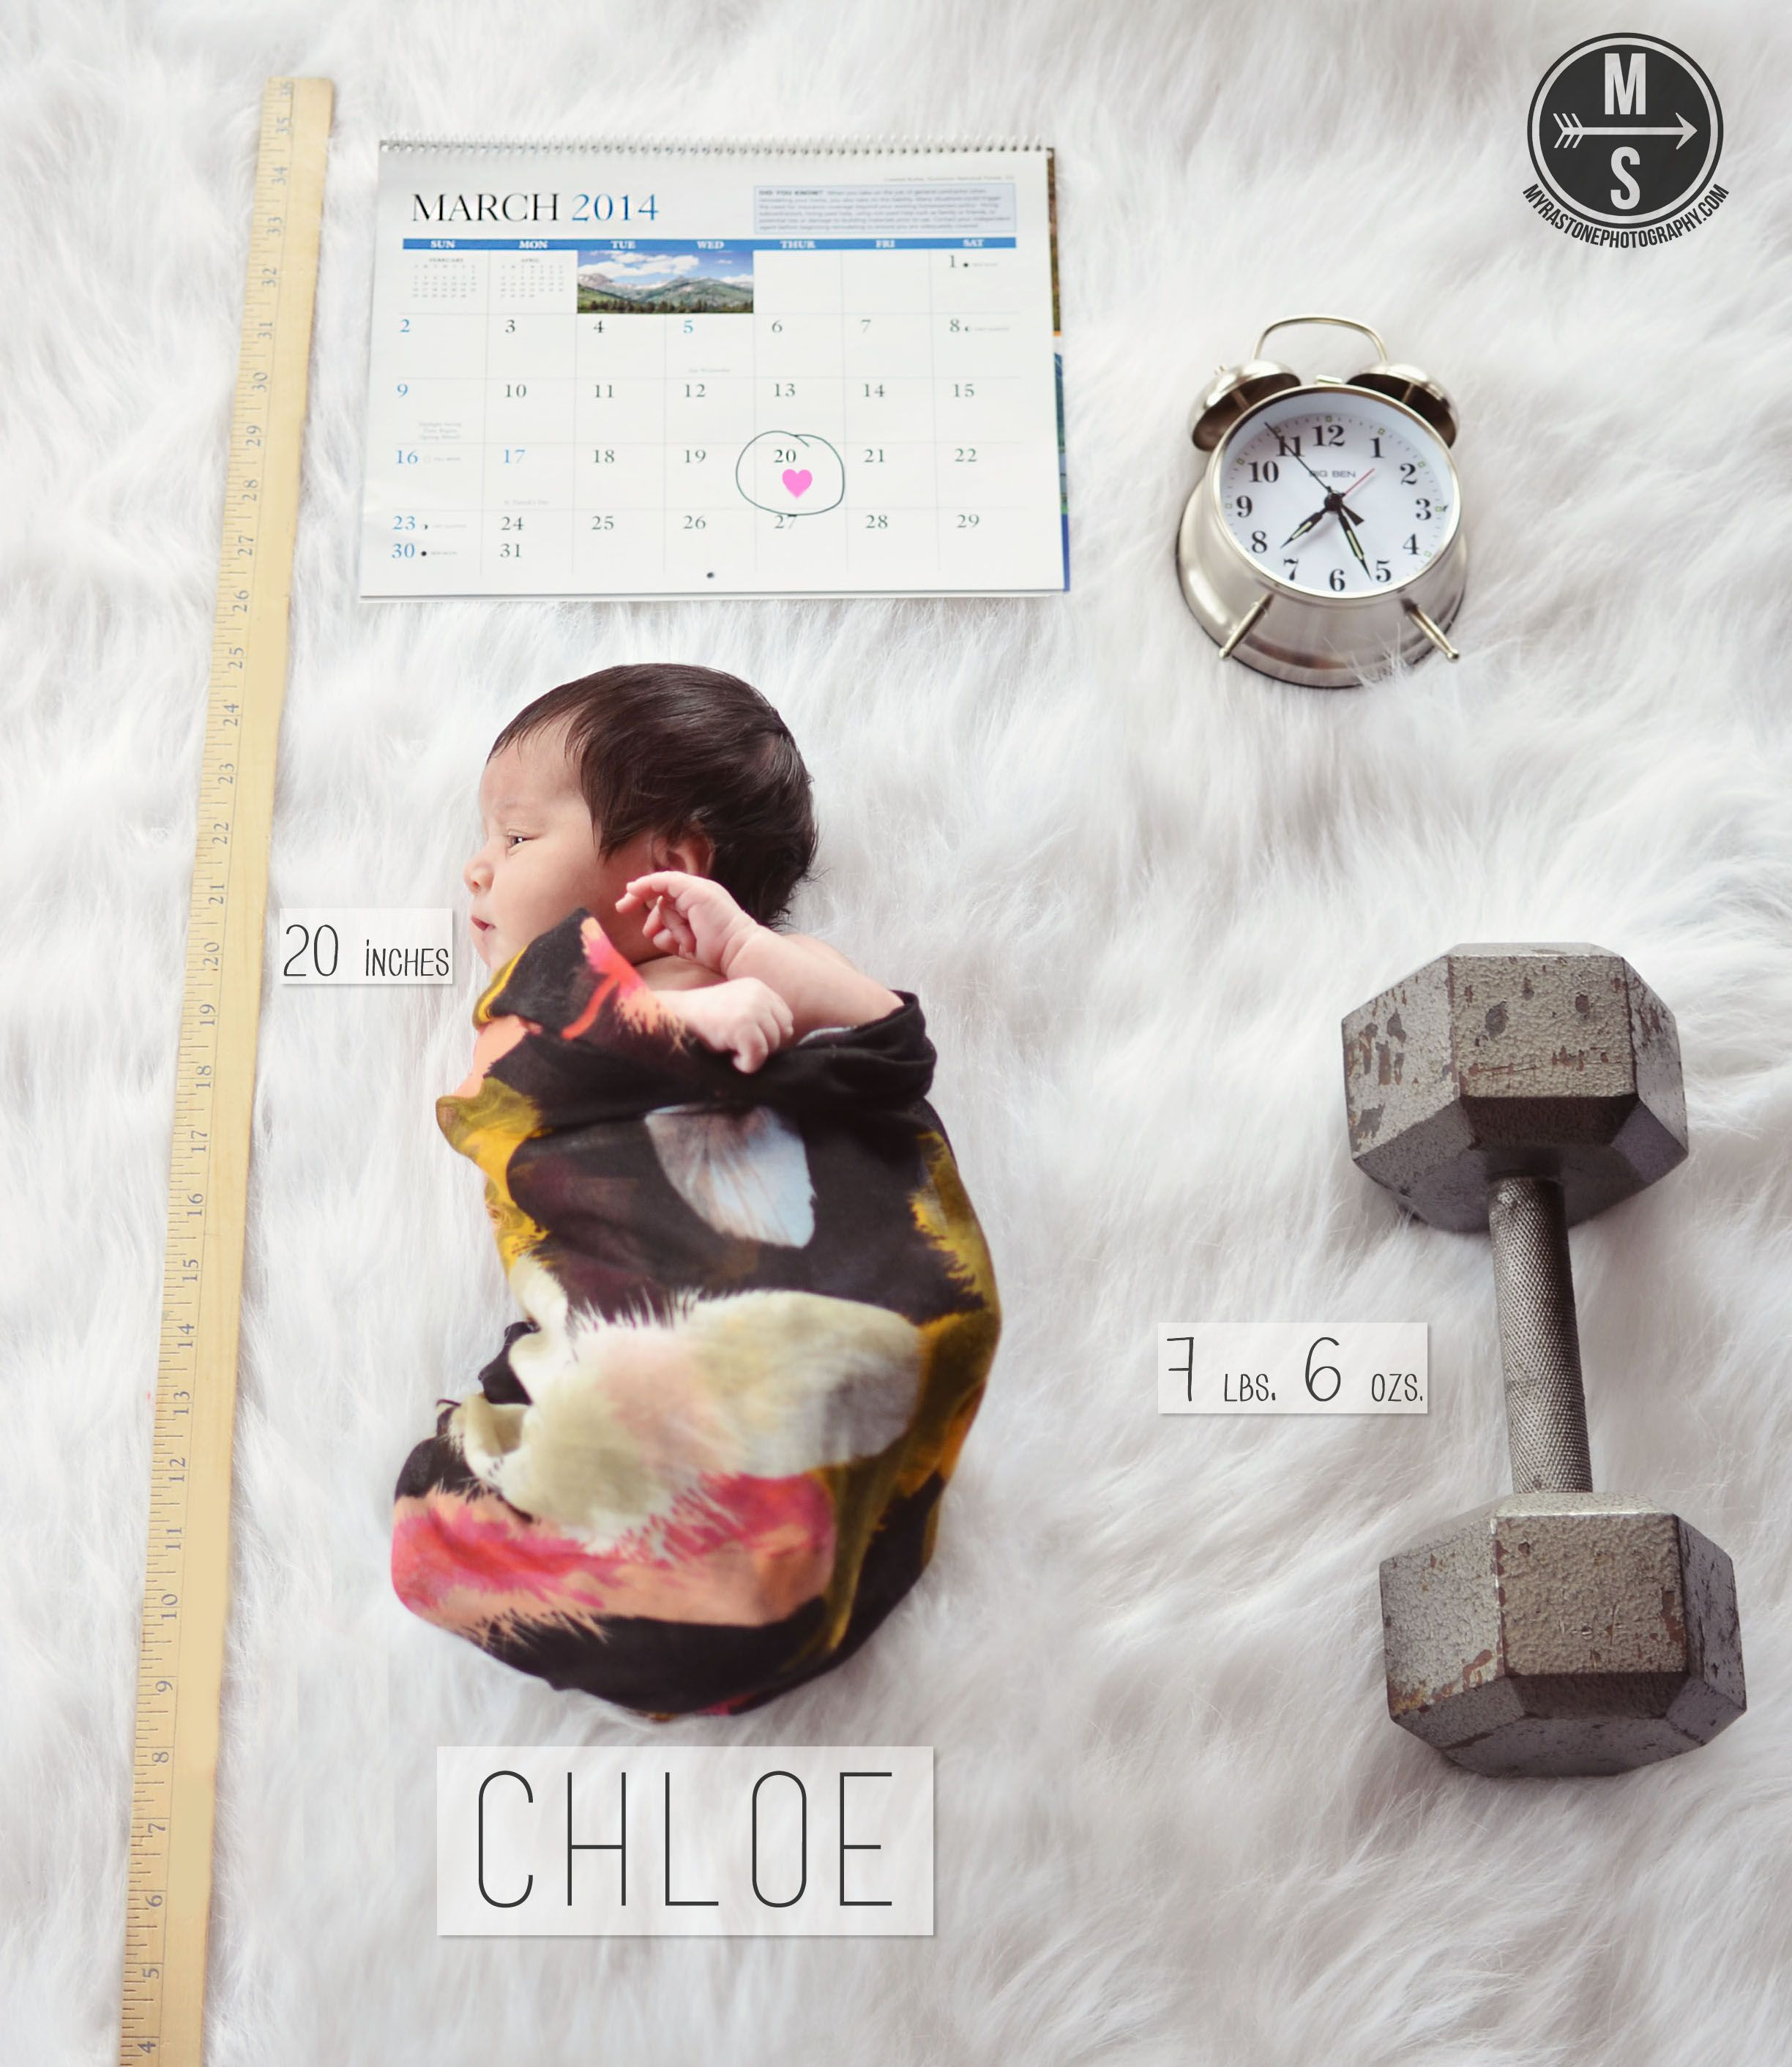 Birth announcement name date time weight height Love how it – Times Herald Record Birth Announcements